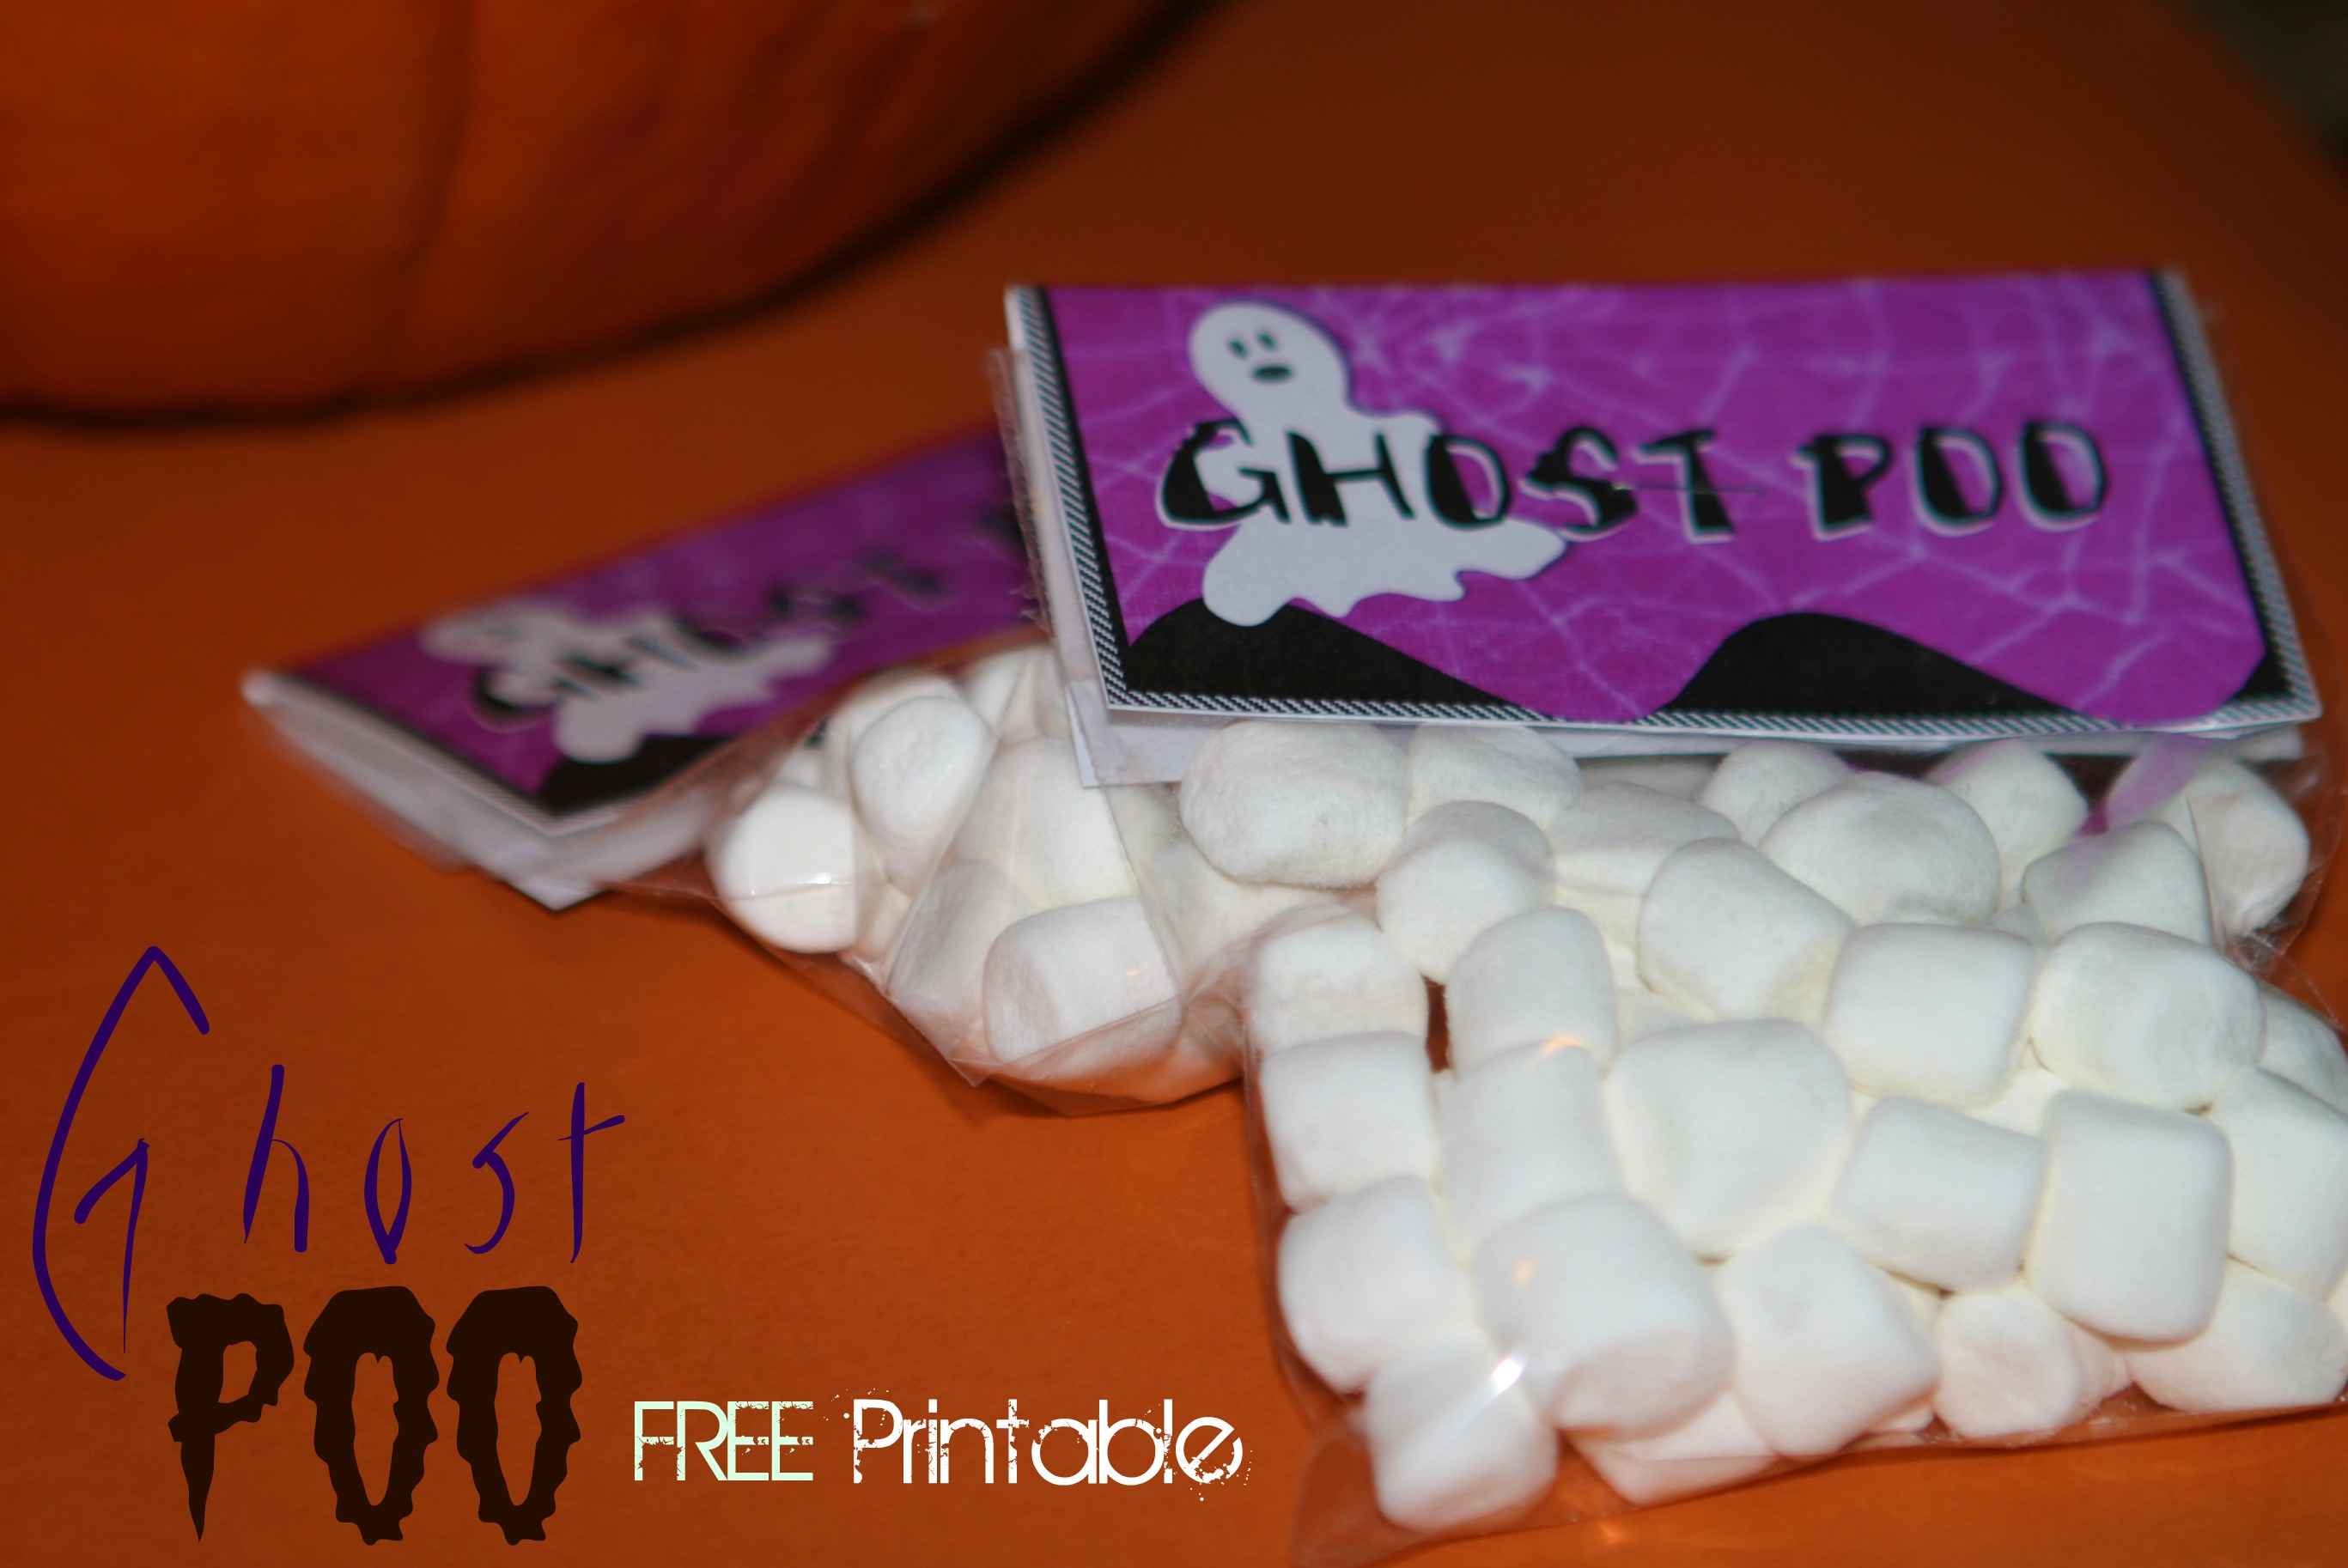 photograph regarding Printable Halloween Craft identified as Halloween Craft Principle: Ghost Poo with Free of charge Printable